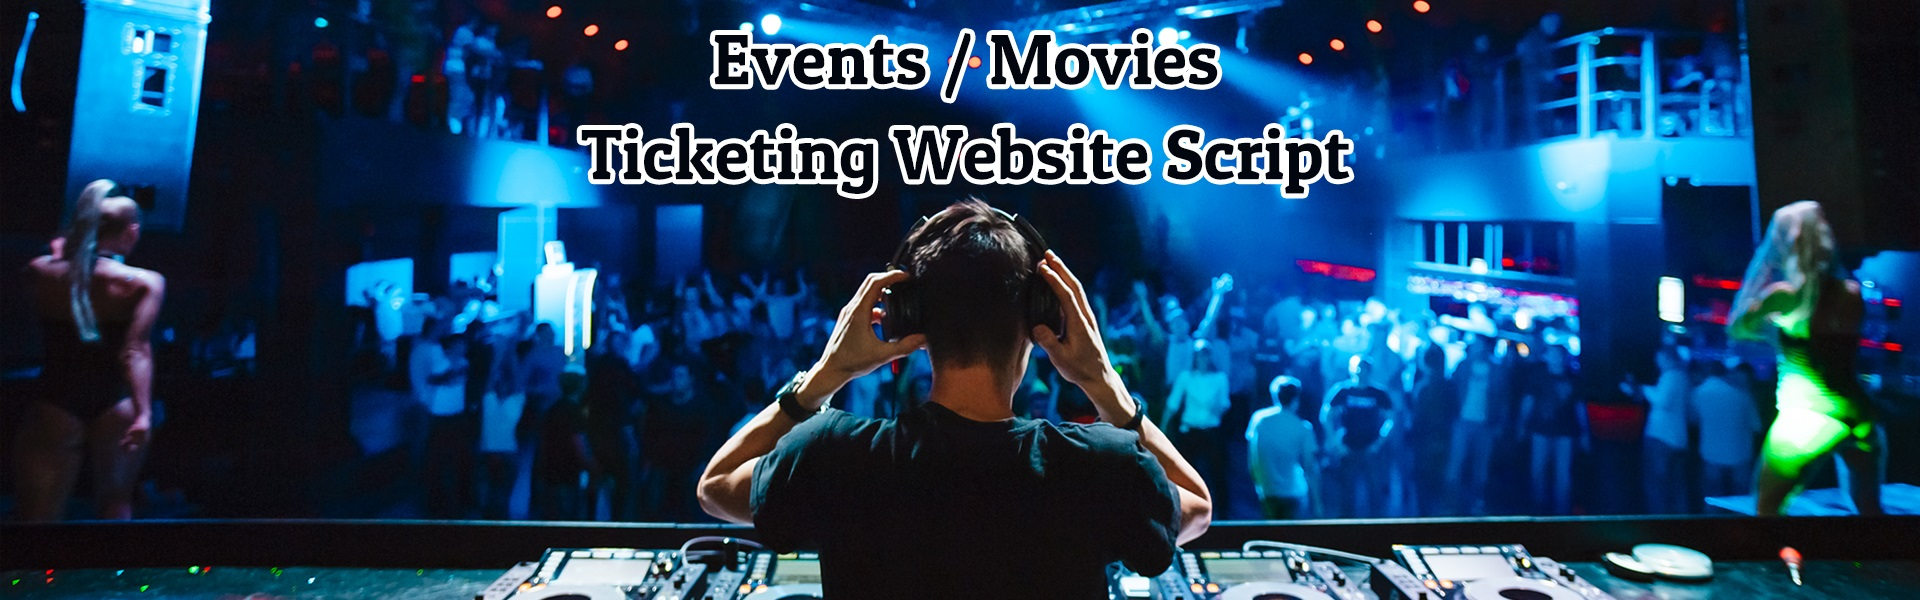 Events Ticketing Website Script